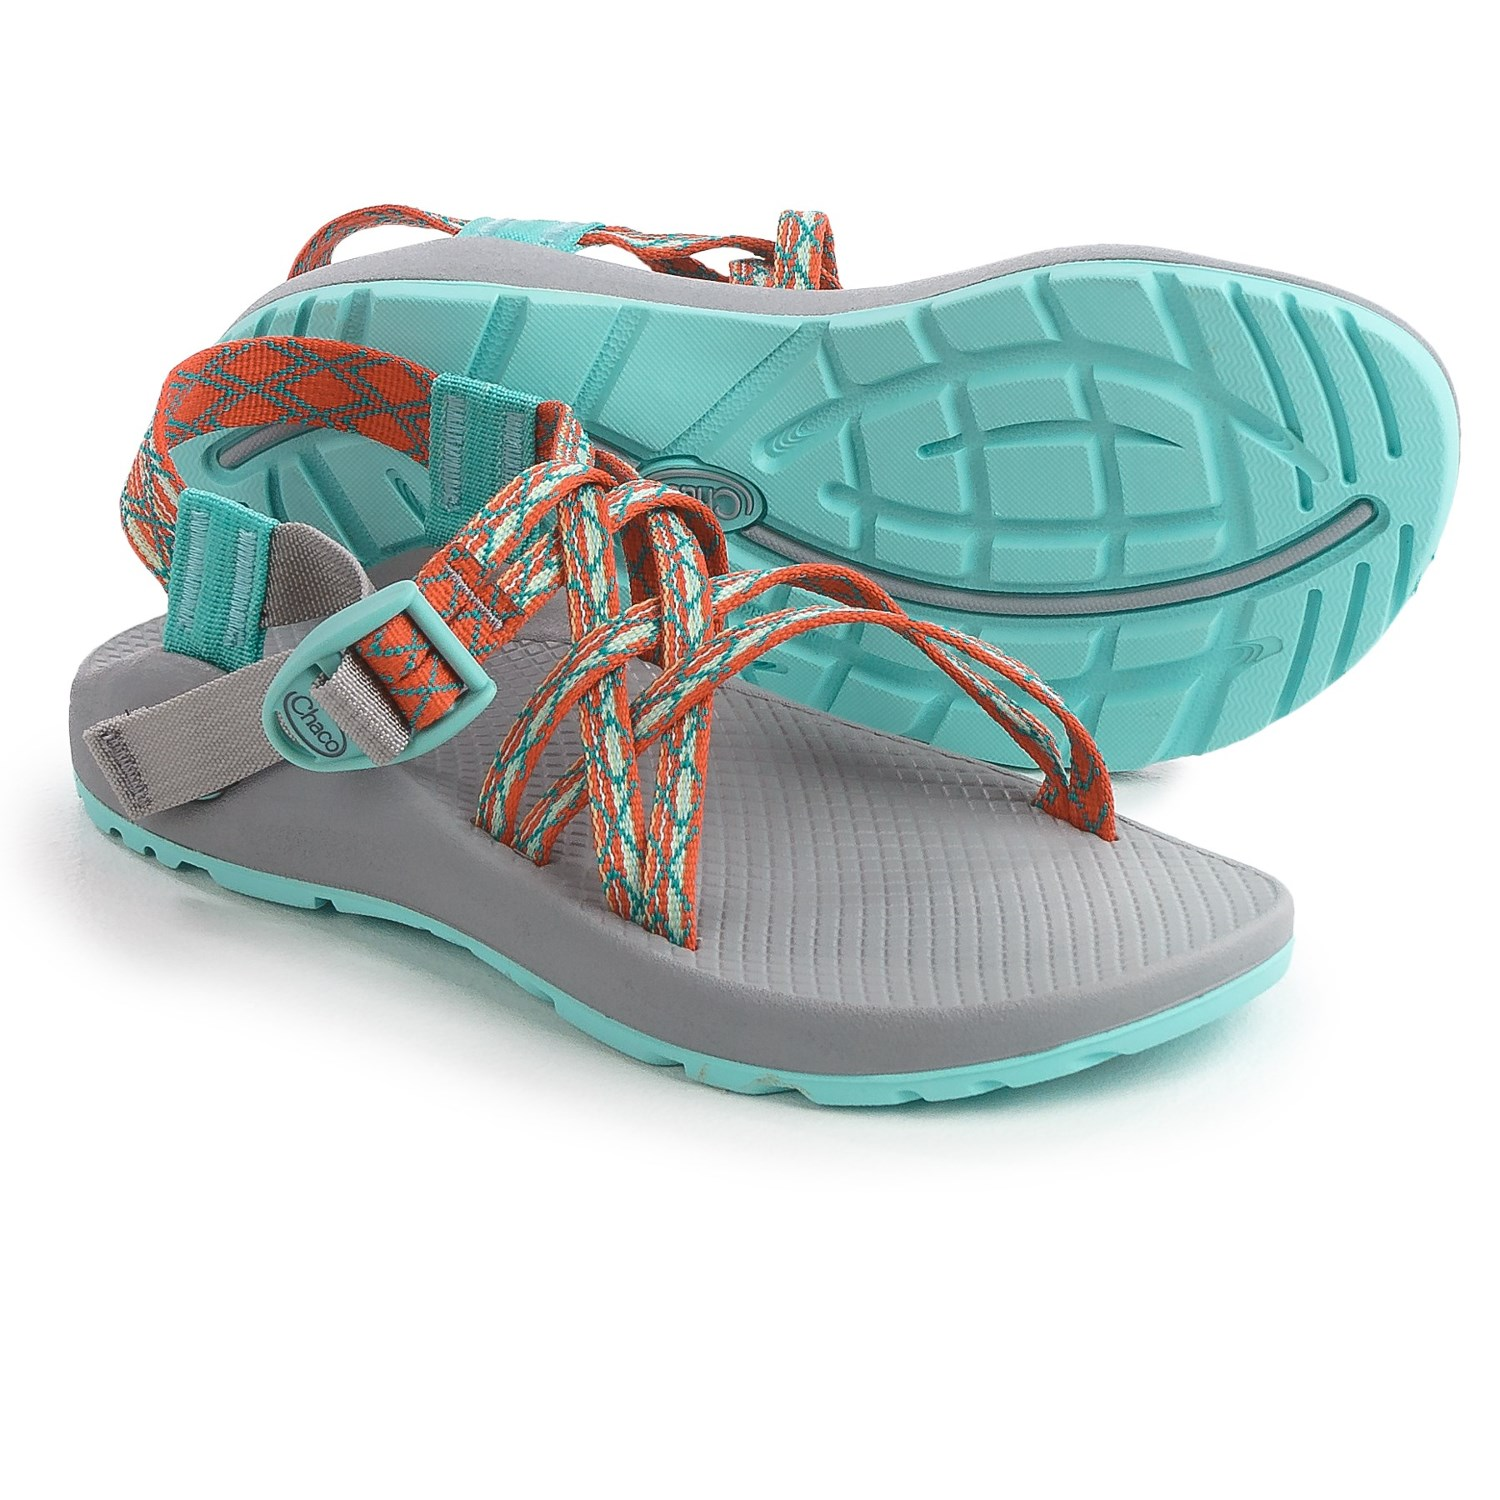 c559fb43c Chaco ZX 1 Classic Sport Sandals (For Women) in Paloma Tangerine ...